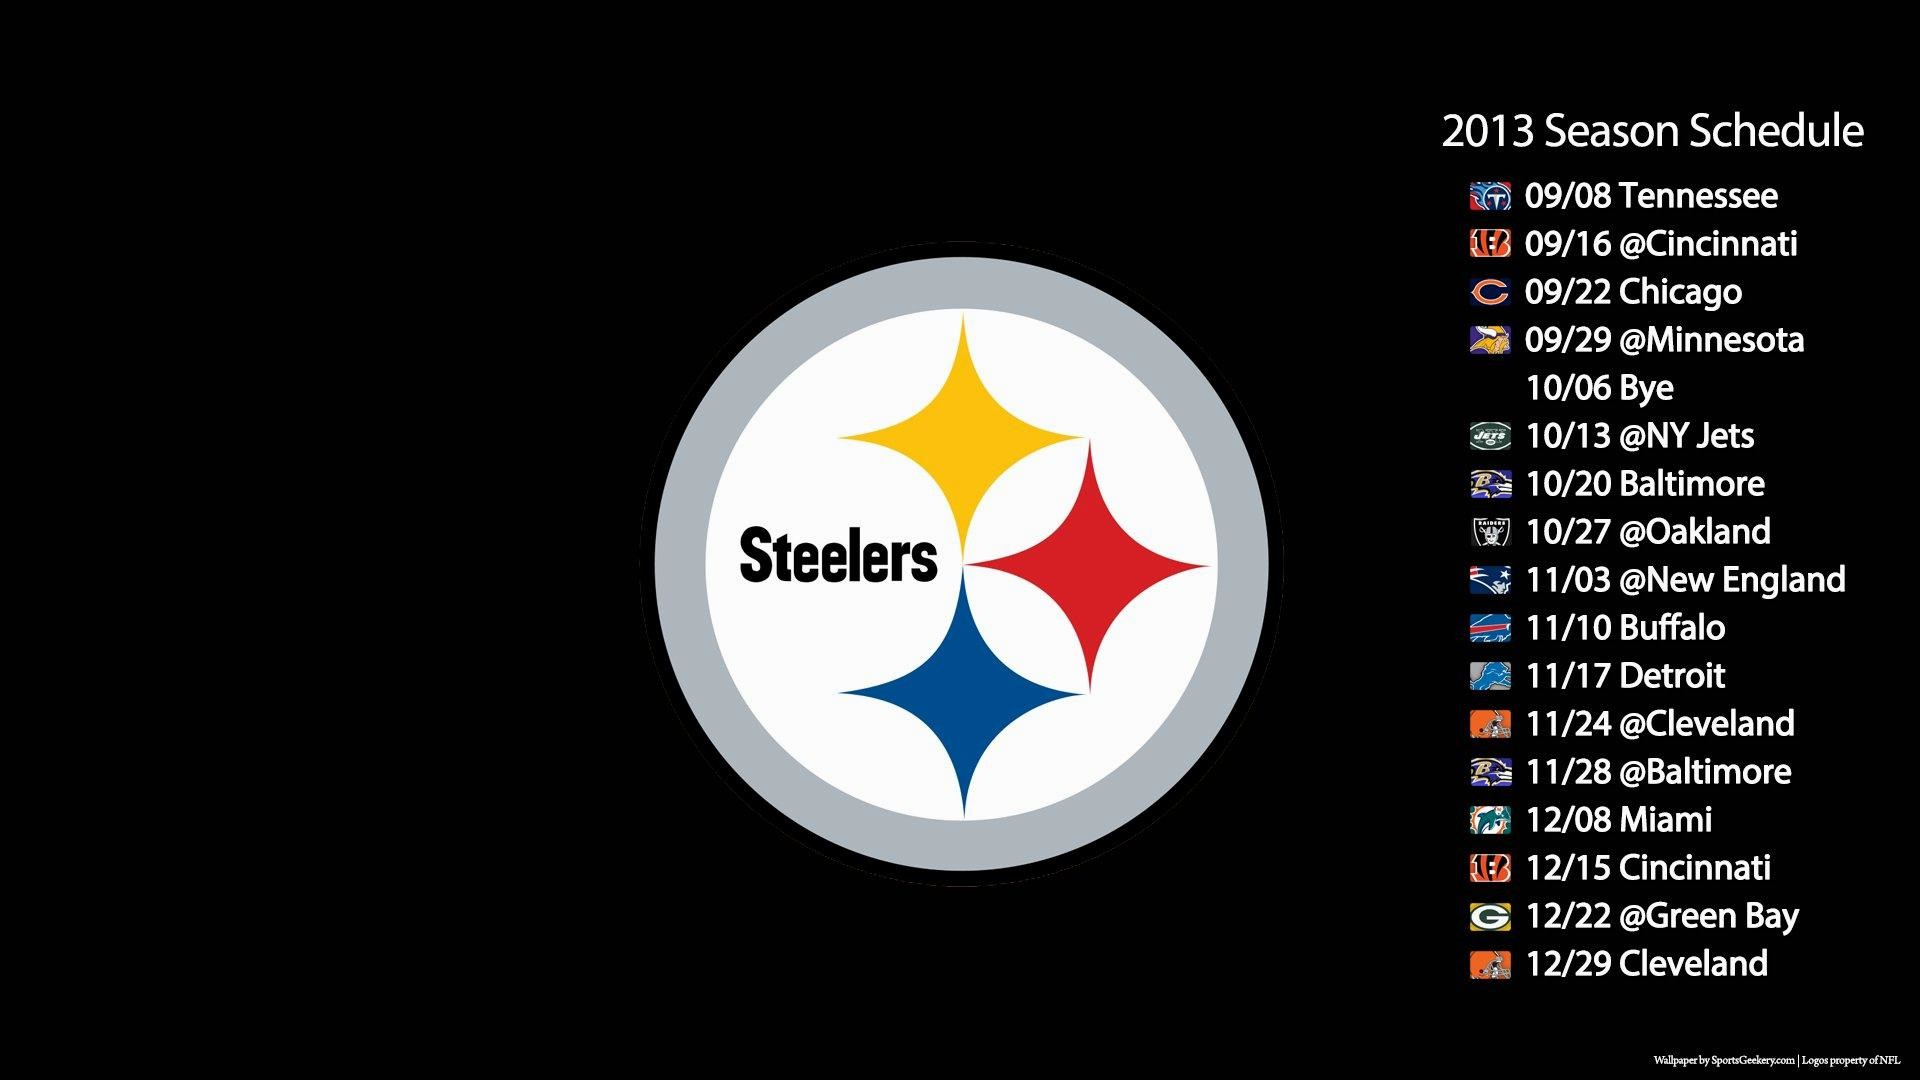 1920x1080 - Steelers Desktop 54